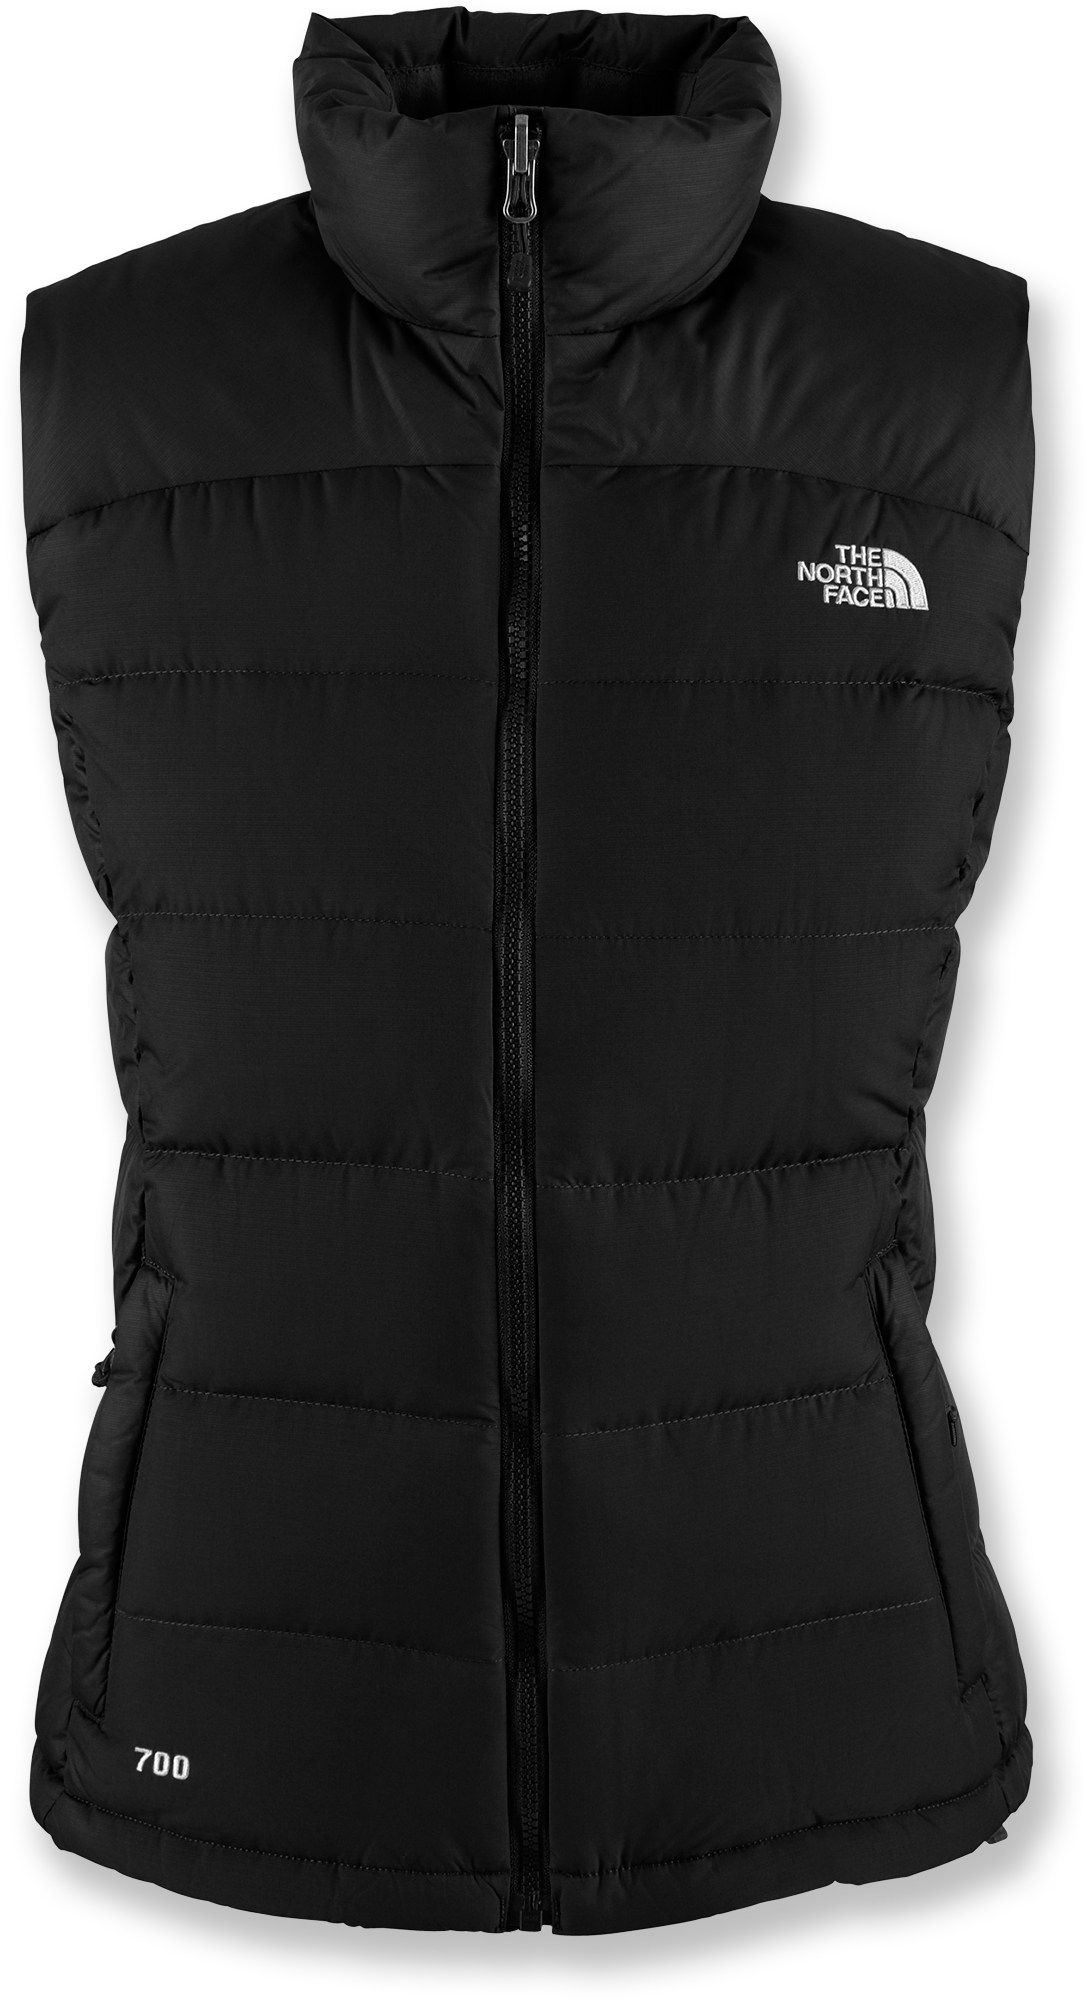 04989c6833 The North Face Nuptse 2 Down Vest - simple   stylish